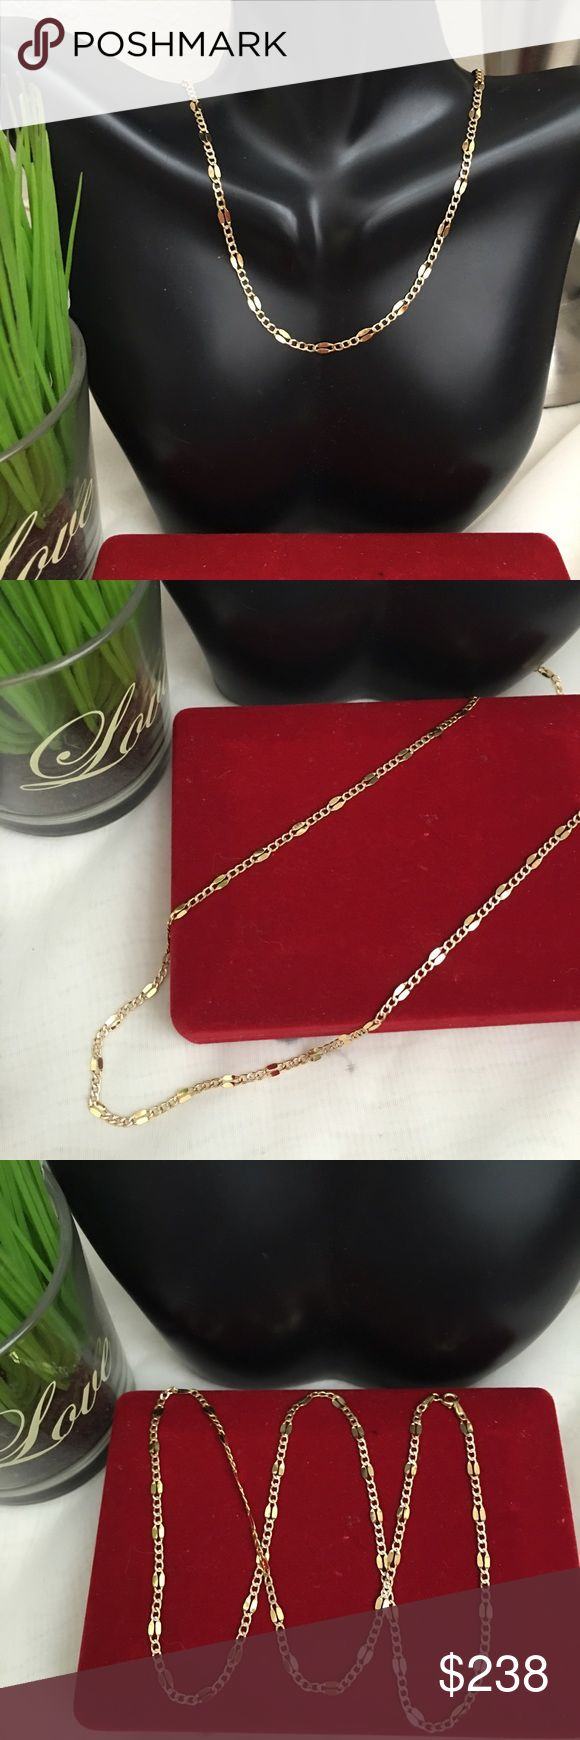 18K Real Solid Gold Chain for Men Made of 100% 18K Real Gold. * 750 Stamped * 22 inches long *3.1grams #RealGold * Not Plated! * Not filled! * If you have any questions please do not hesitate to ask before buying to avoid return. * If you have doubt please don't buy! * all Jewelries are 100% Tested! Jewelry Necklaces